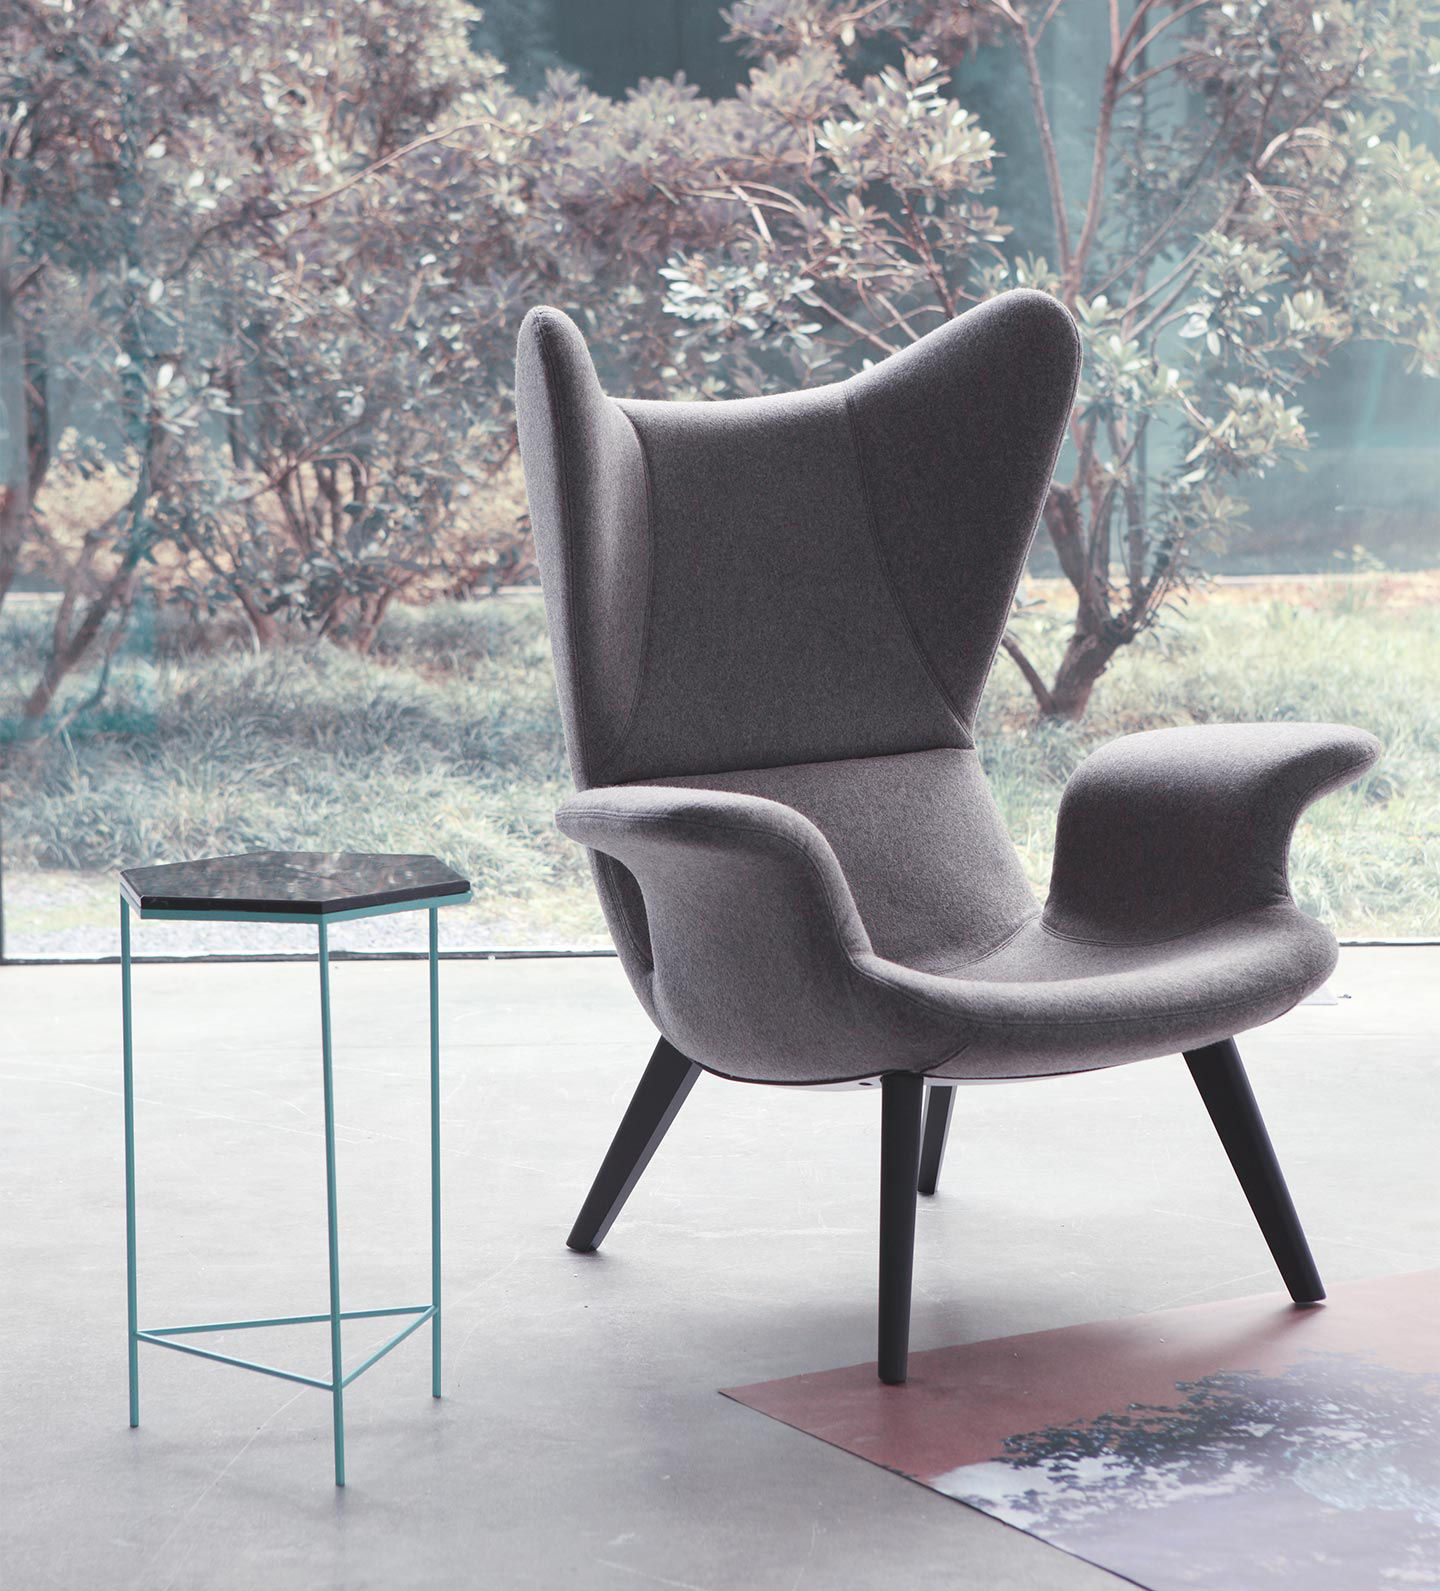 Fauteuil rembourr longwave gris clair pied noirs diesel with moroso - Fauteuil made in design ...